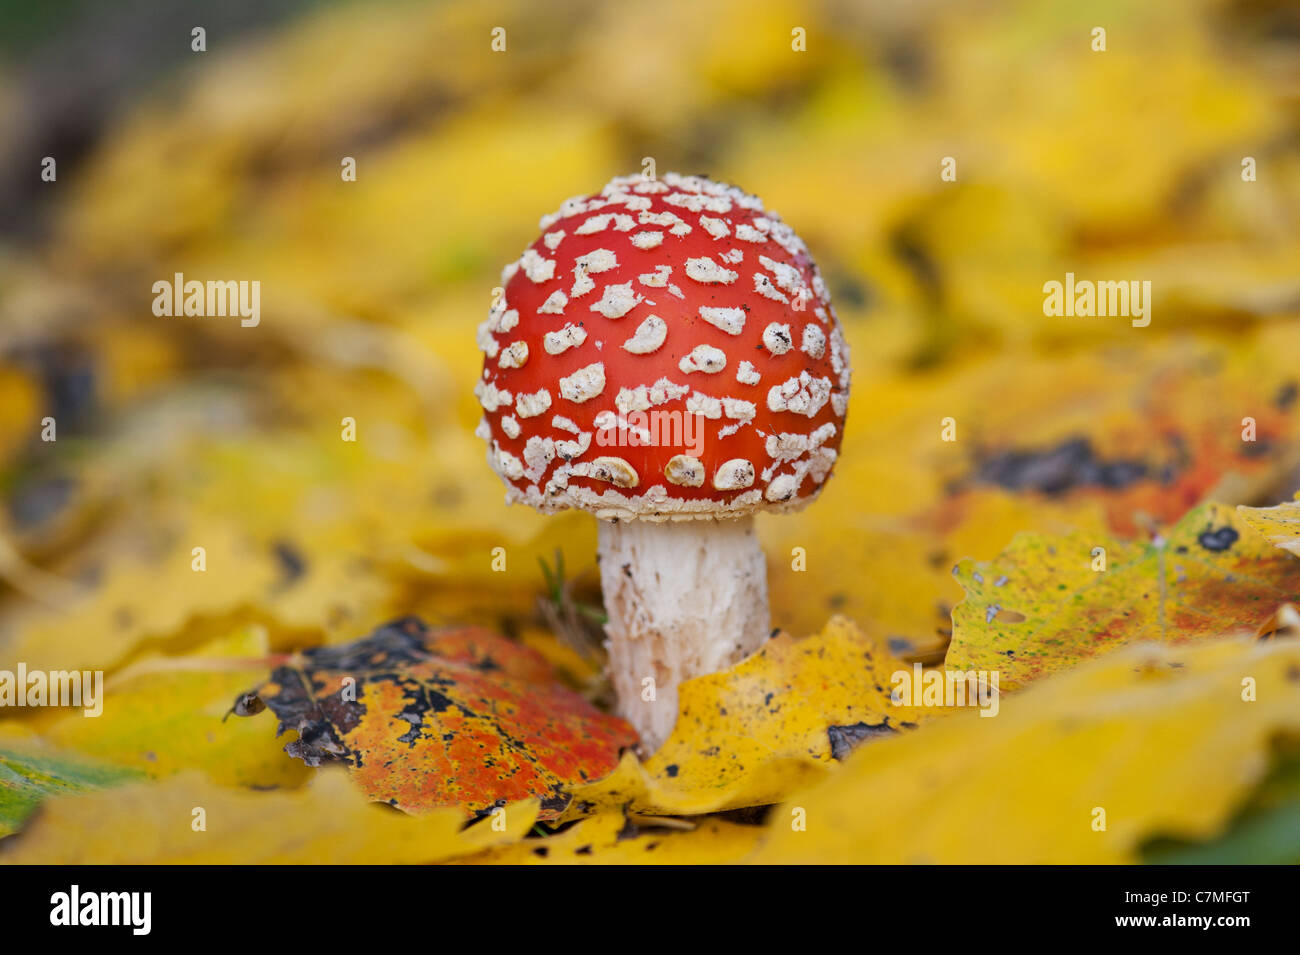 Amanita muscaria, Fly agaric mushroom growing amongst fallen golden leaves in a woodland. Stock Photo